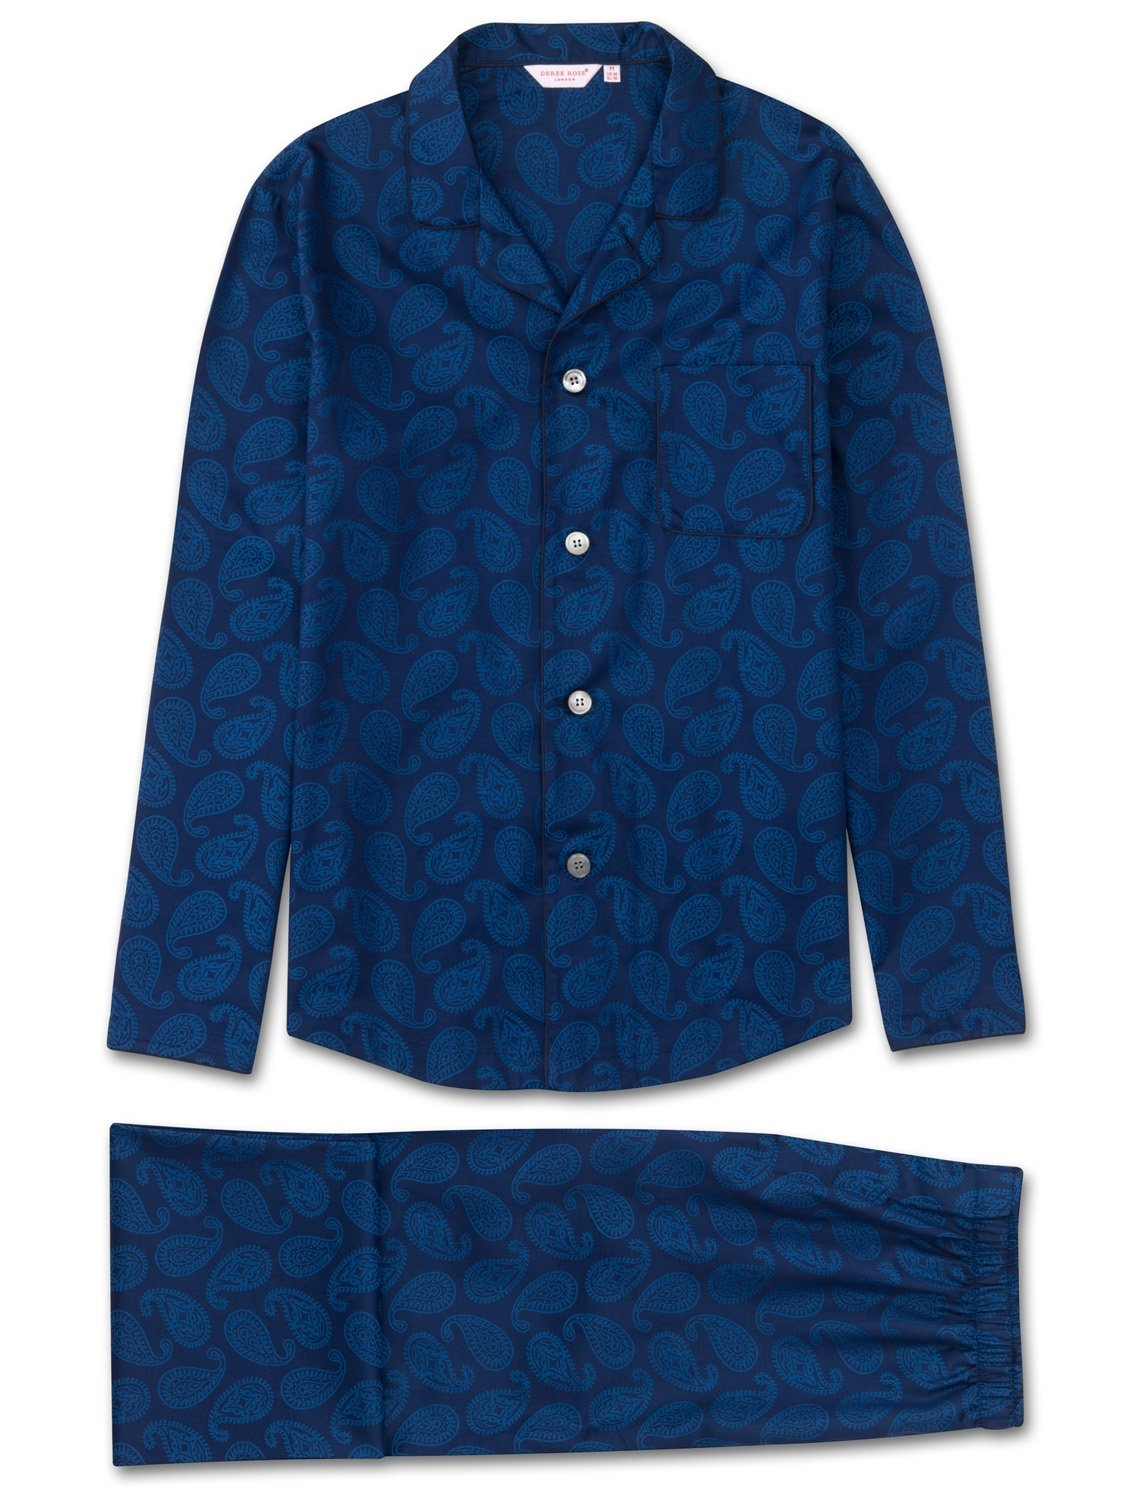 Men's Modern Fit Pyjamas Paris 13 Cotton Jacquard Navy